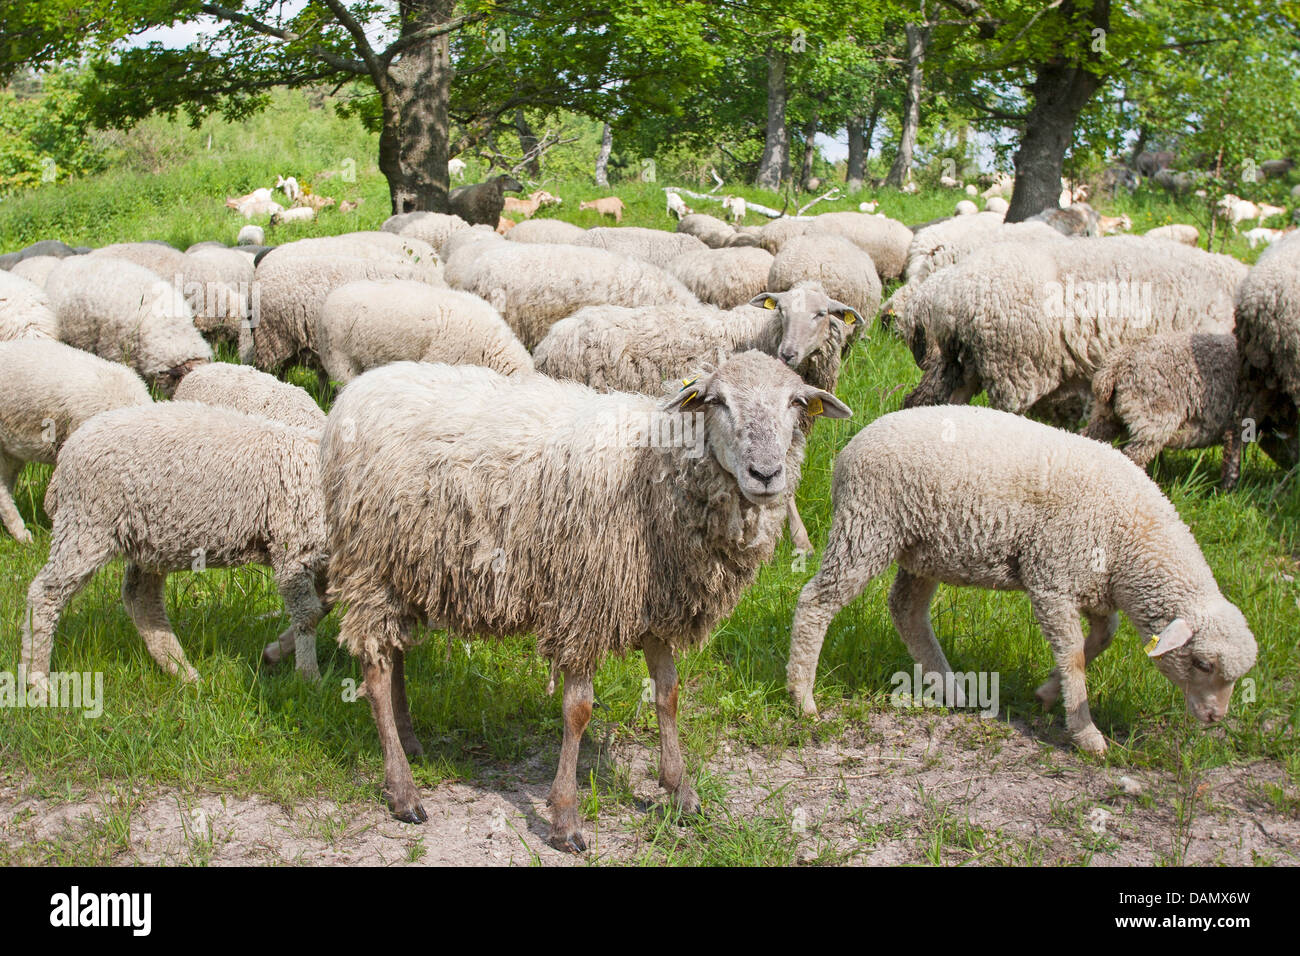 Merino sheep (Ovis ammon f. aries), flock of sheep browsing in a meadow, Germany - Stock Image